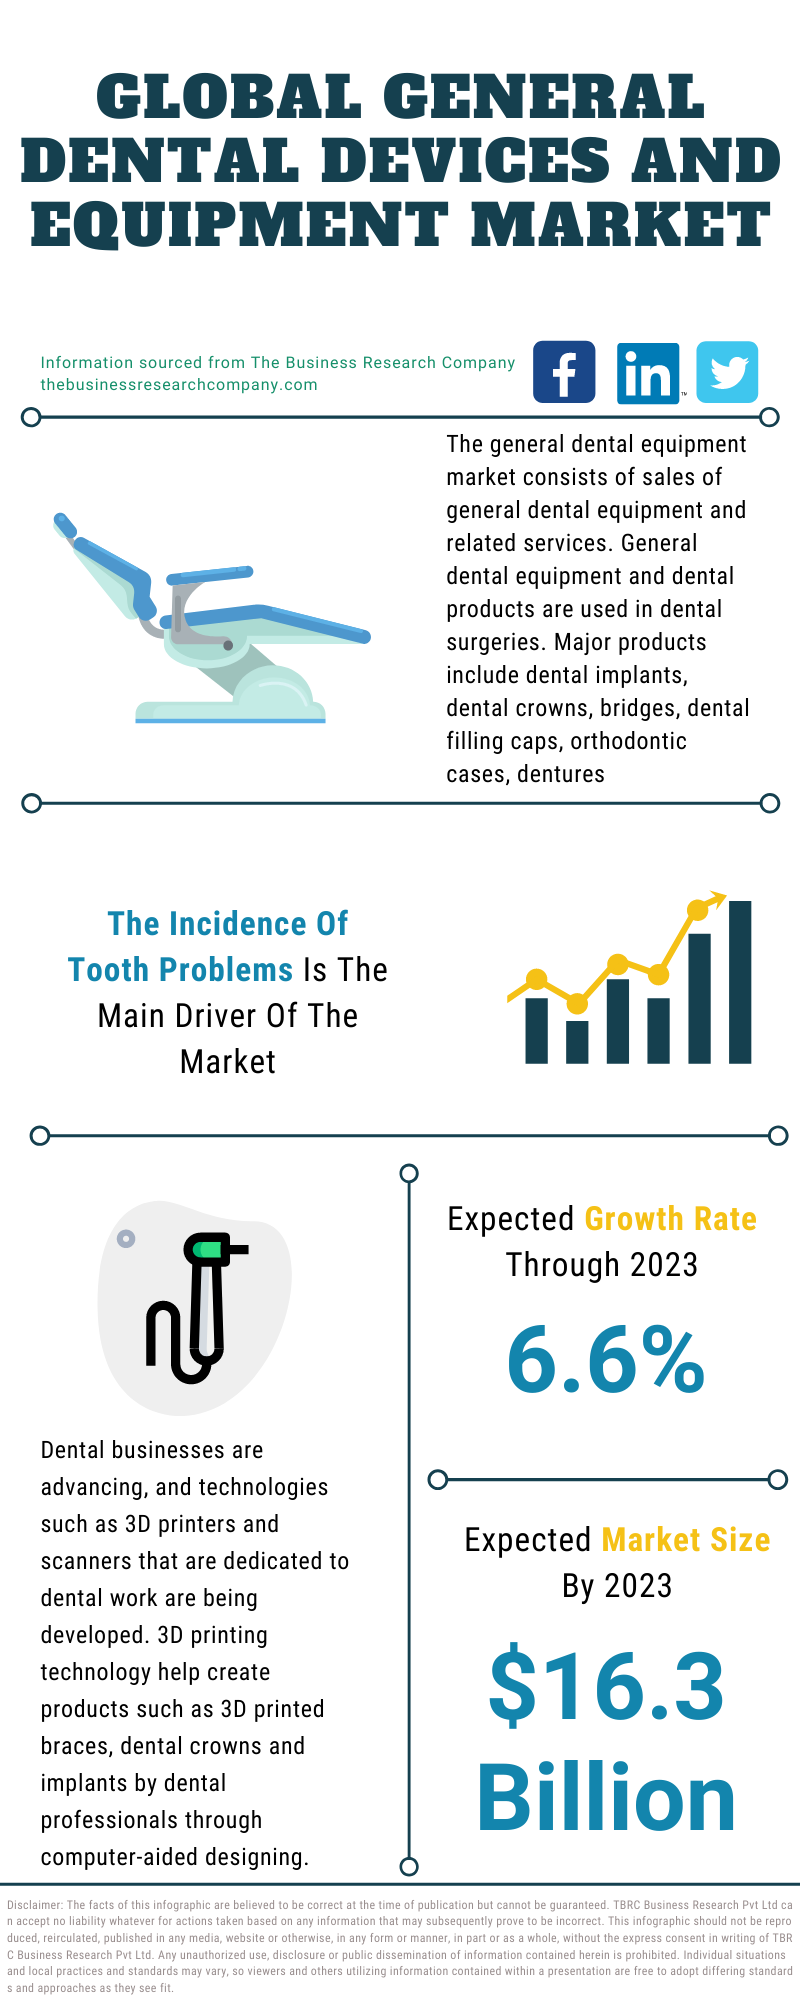 General Dental Devices And Equipment Market